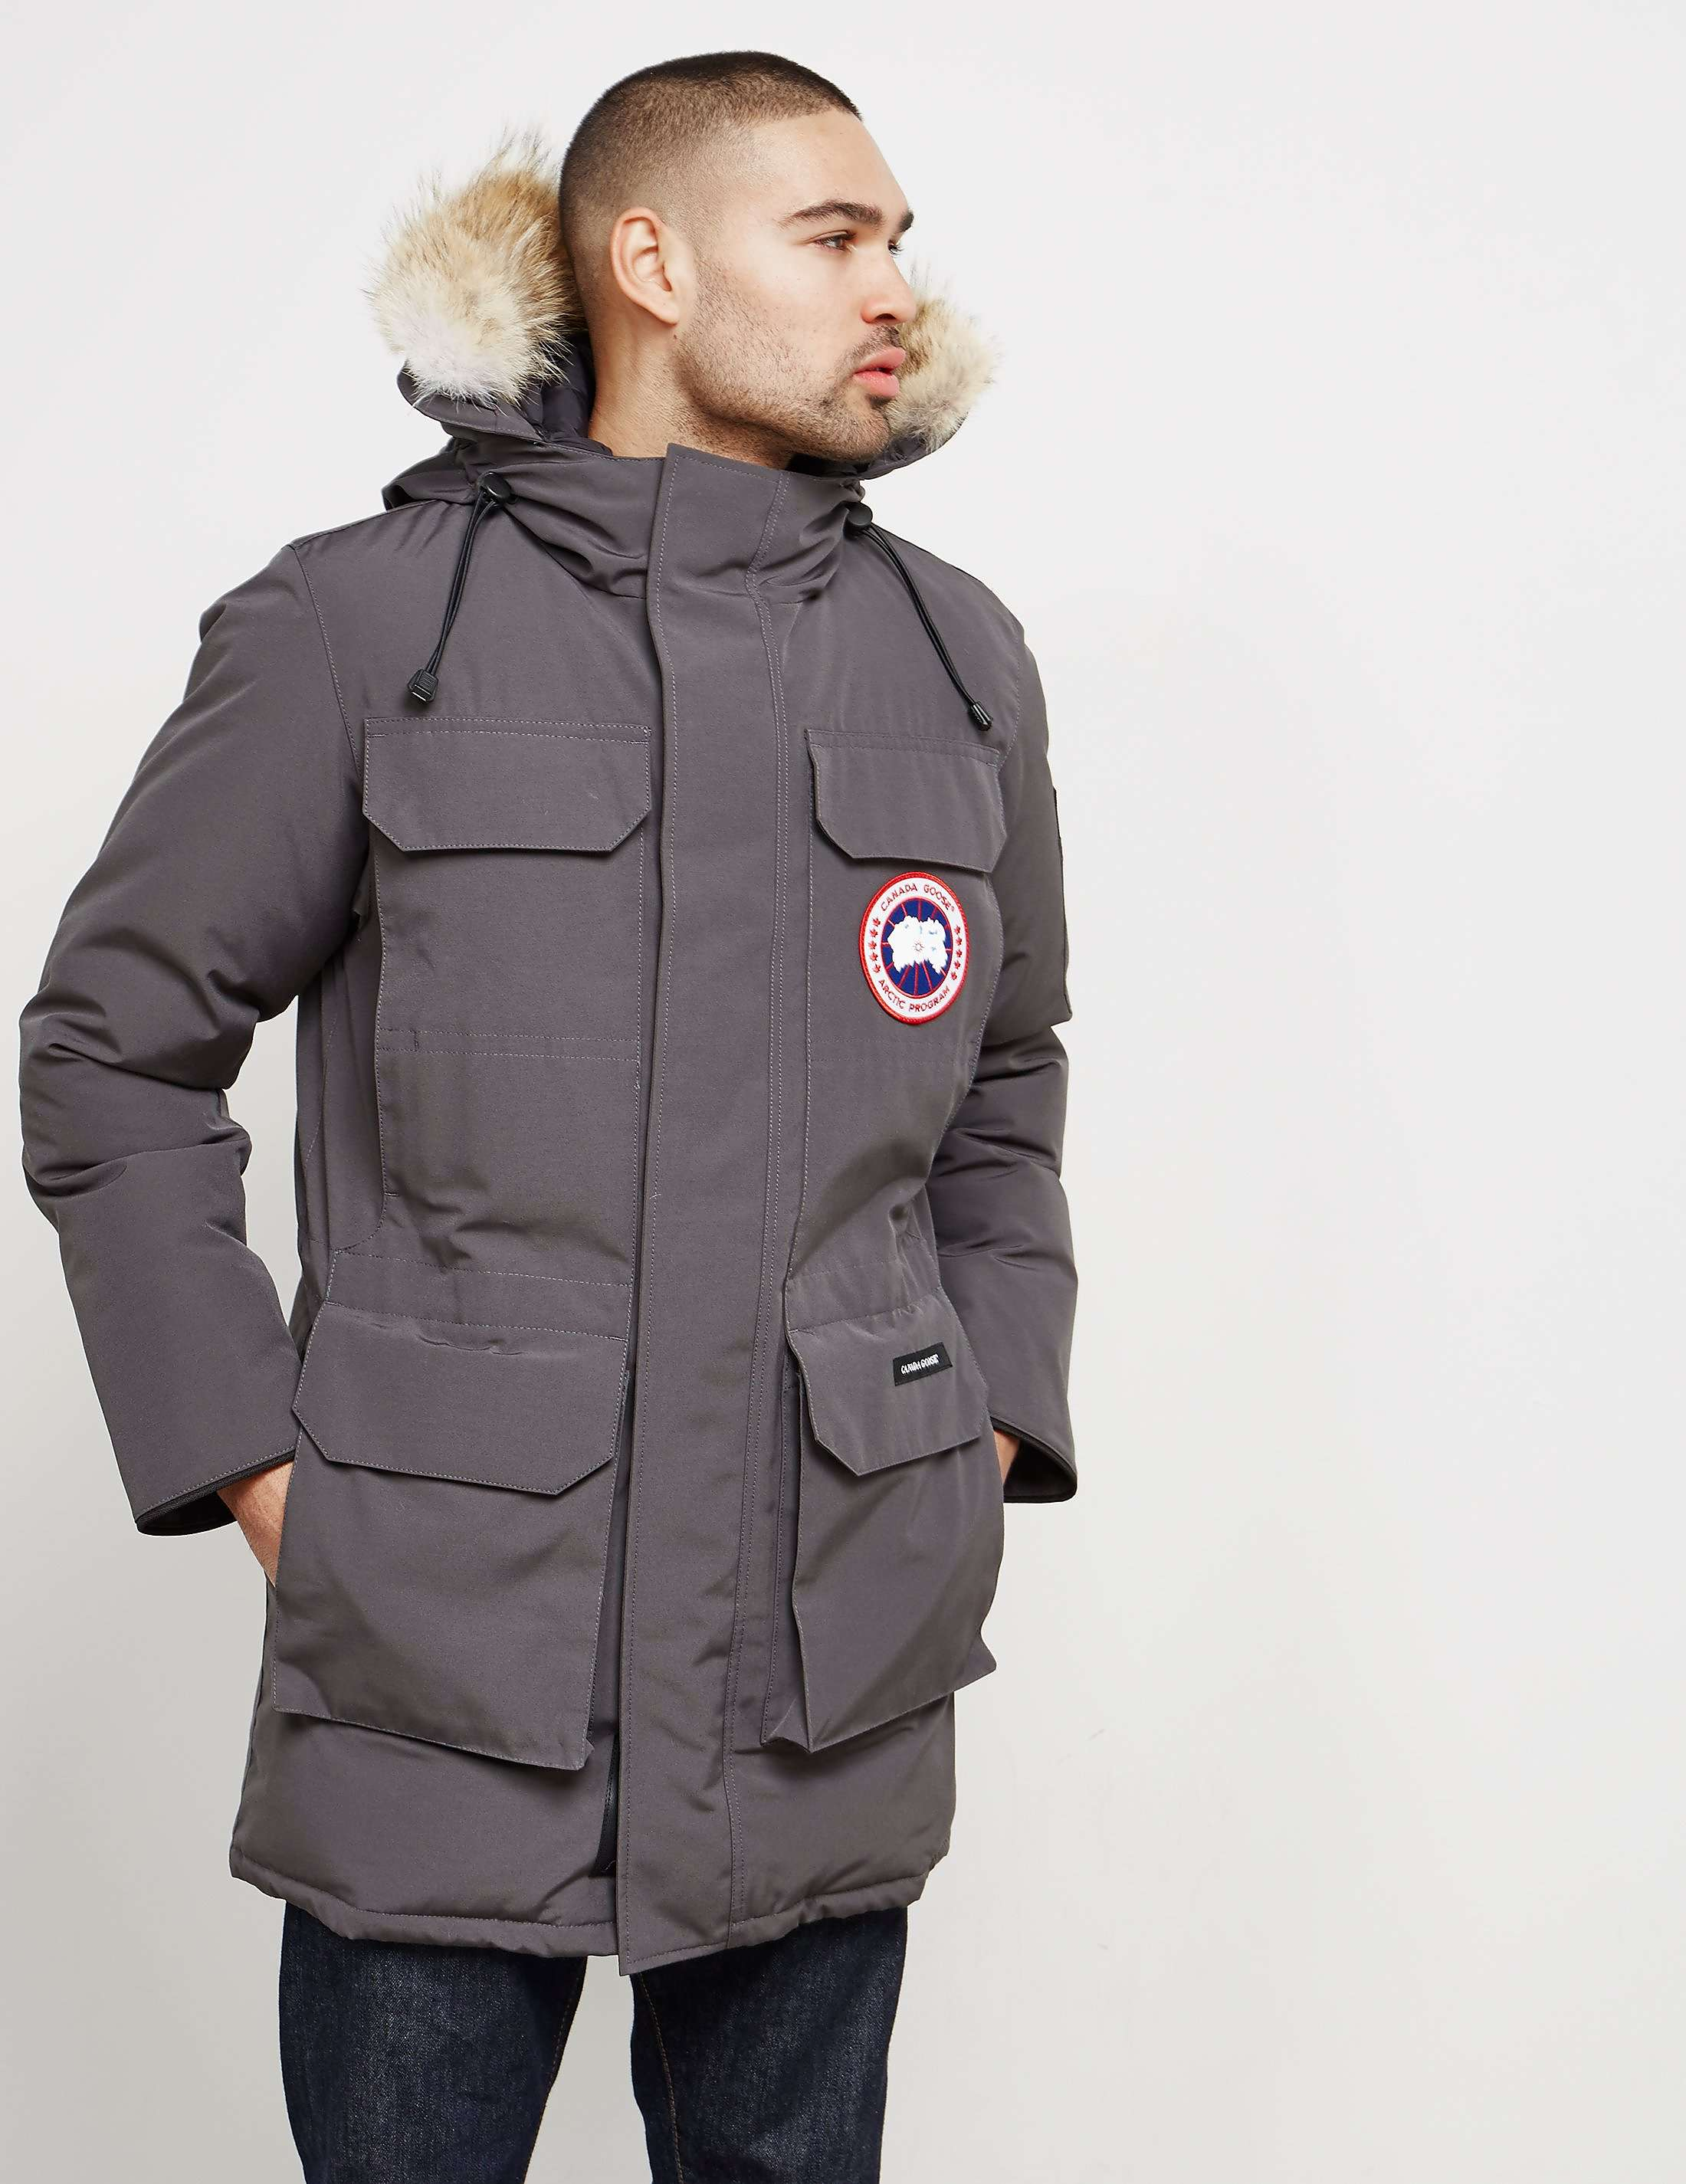 Proudly made in Canada since , Canada Goose offers the perfect blend of luxury and uncompromising craftsmanship. Every product is designed with purpose and informed by the rugged demands of the Canadian Arctic.